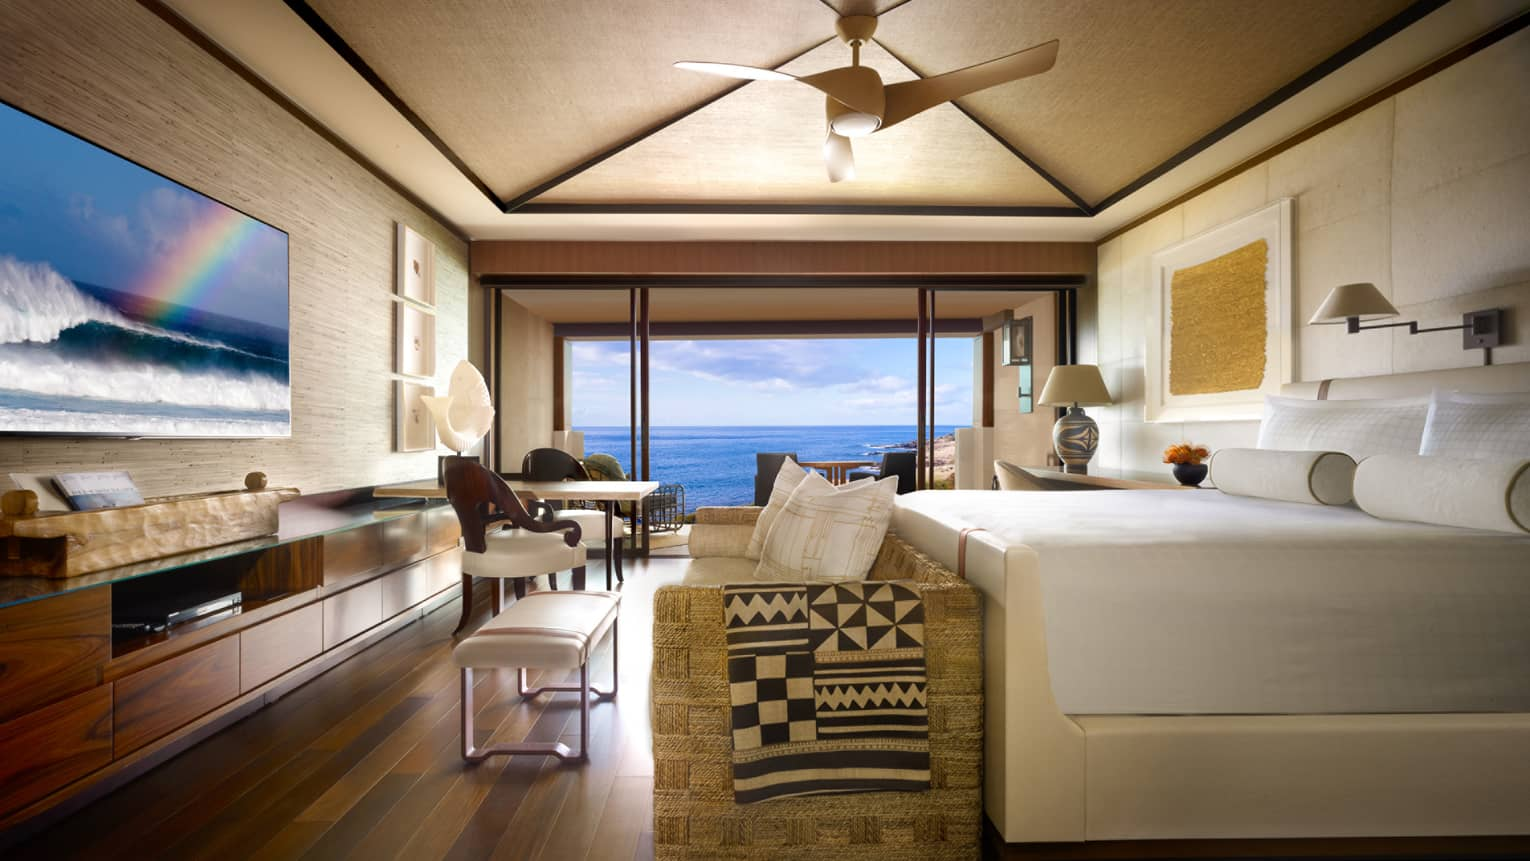 Oceanfront Room bed, small sofa and bench at foot, TV screen displaying ocean waves, rainbow